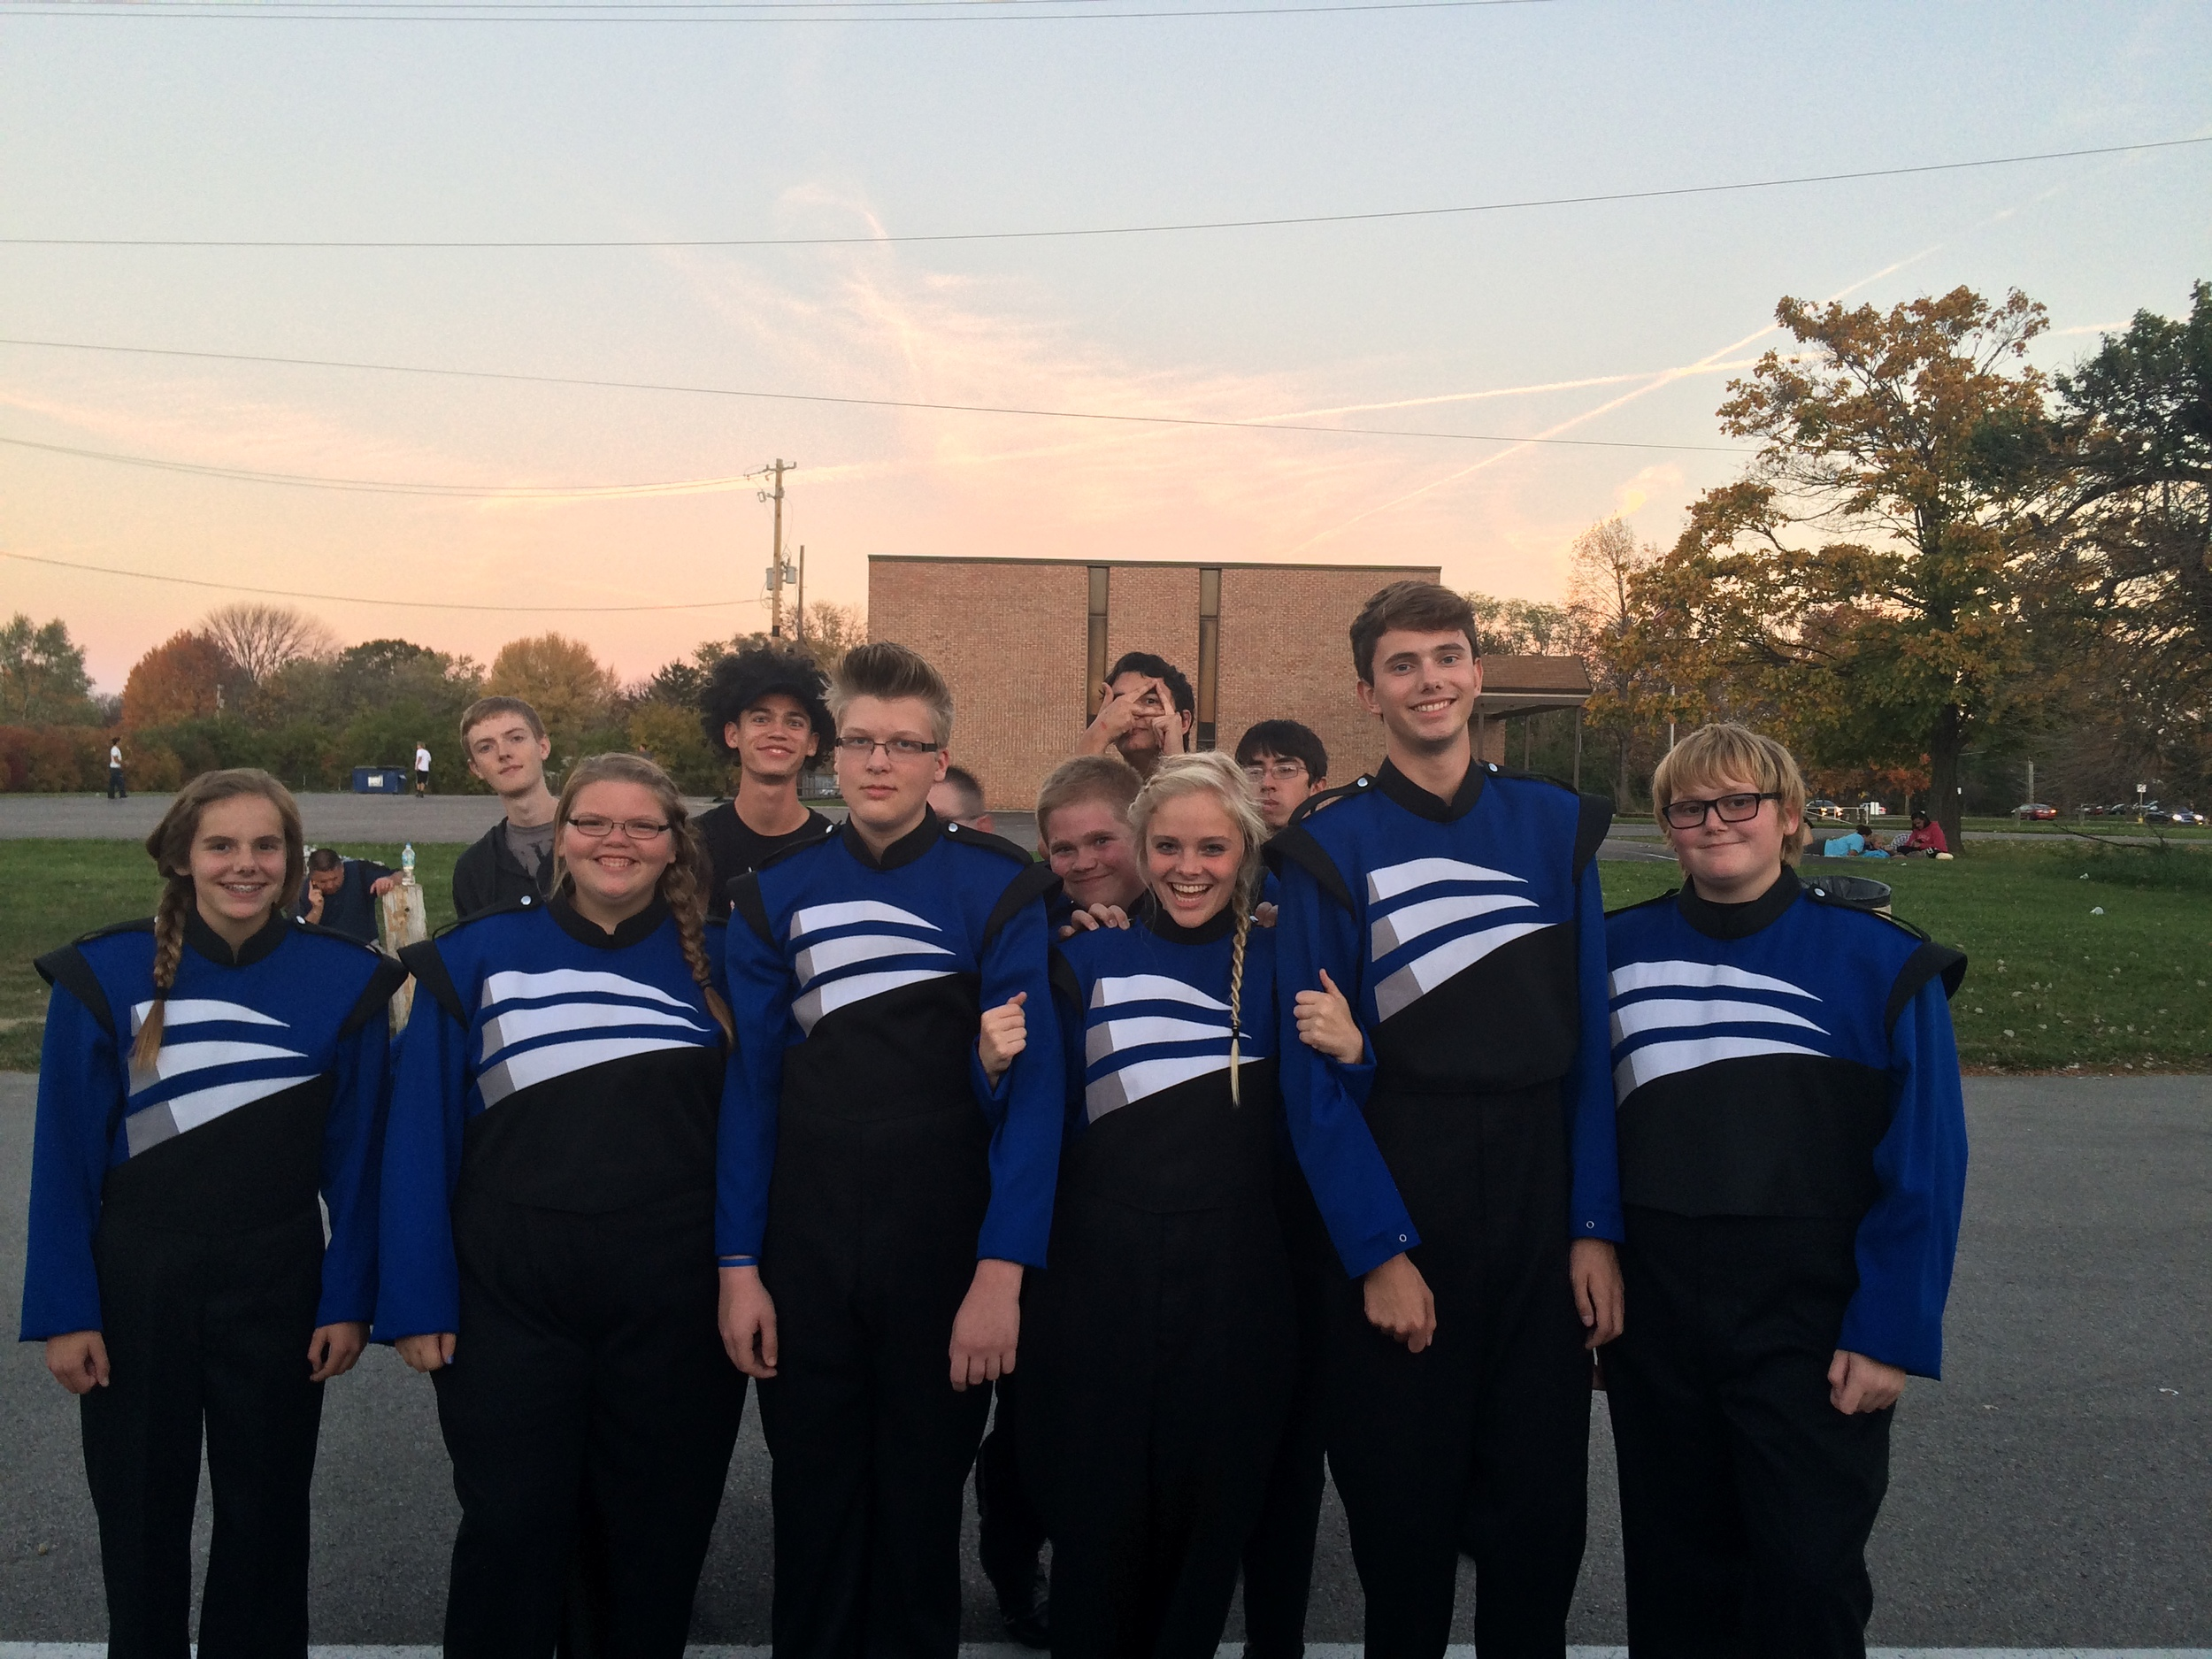 FCHS Percussion Front Ensemble with some DrumLine photo bombers